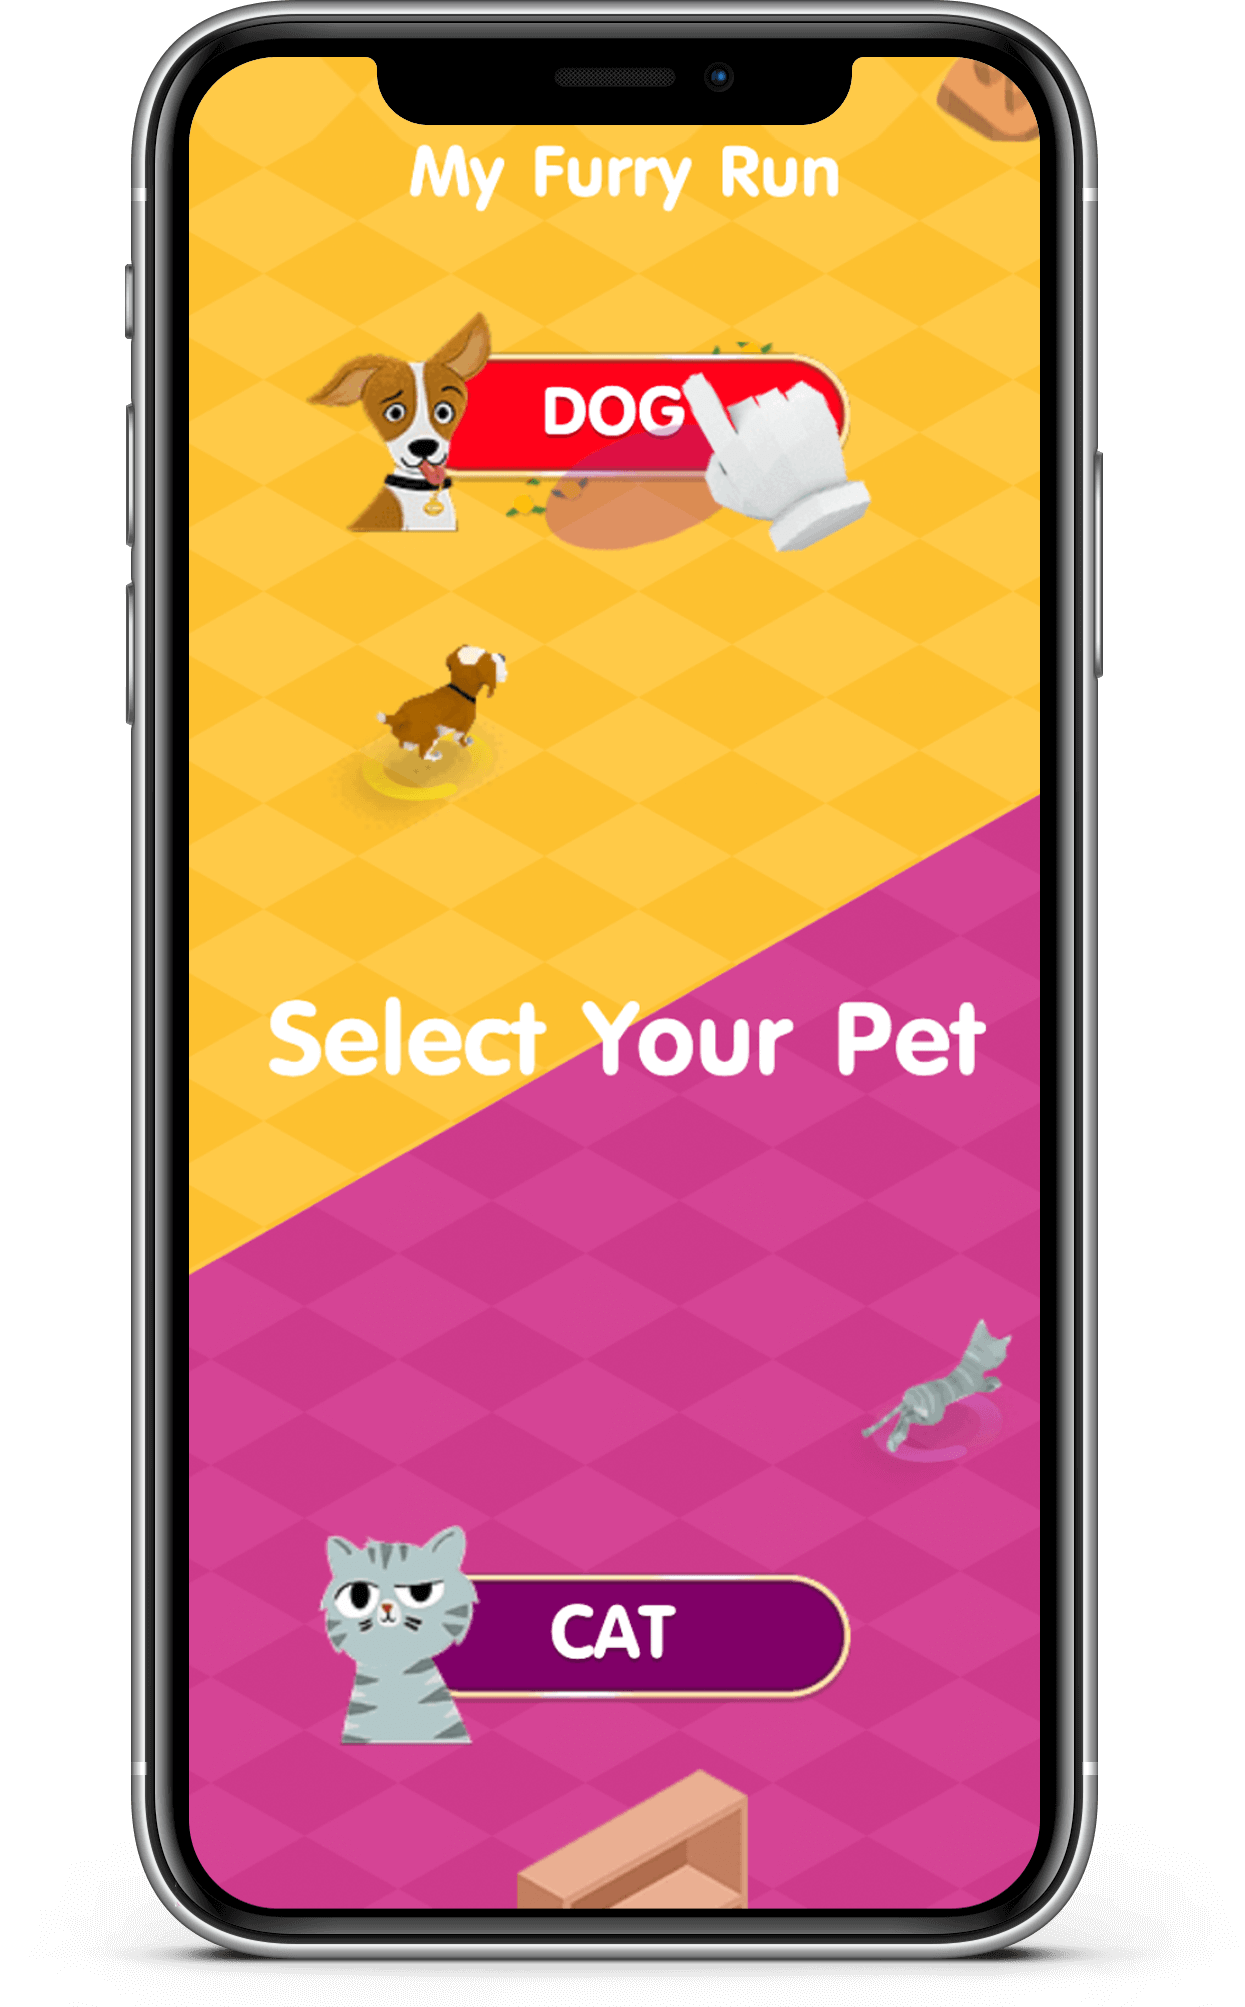 tresensa-playable-ad-mars-petcare.png_1245x2007